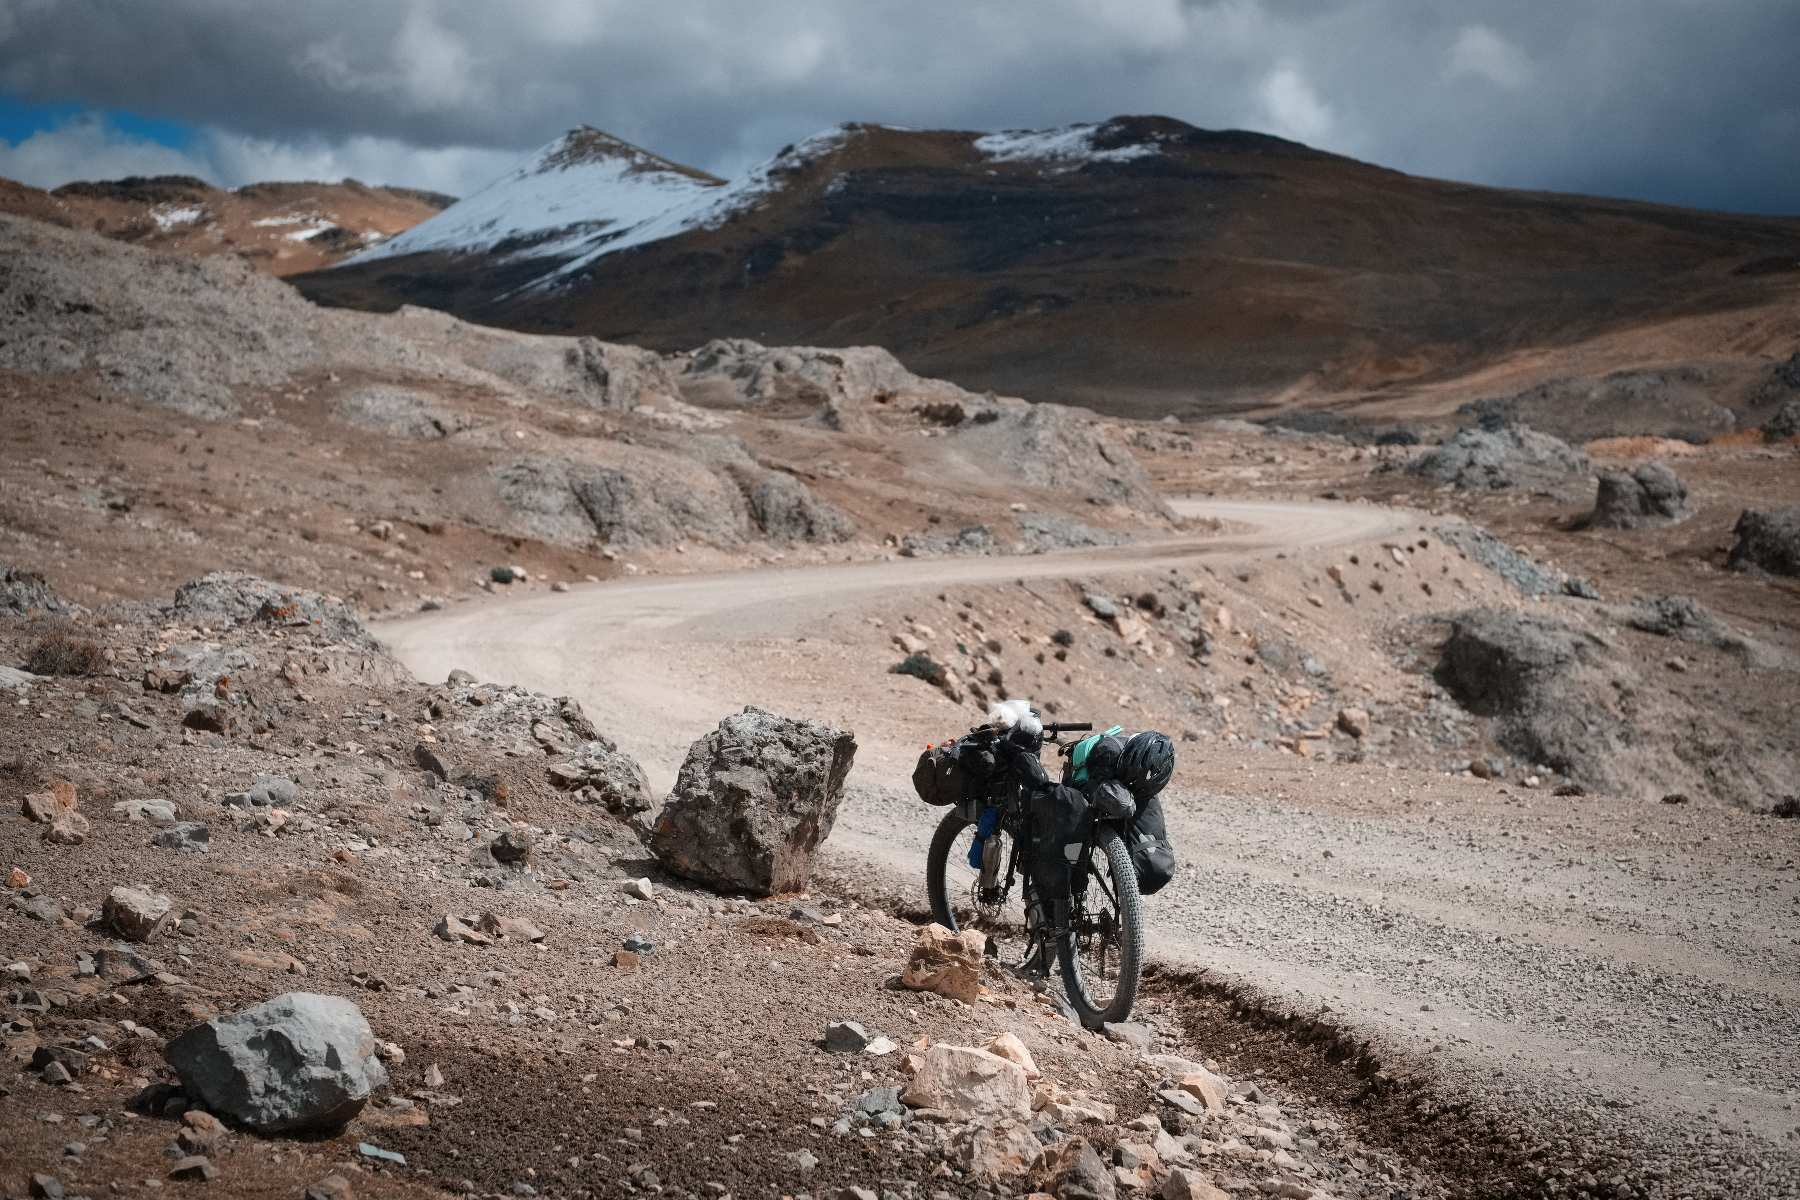 Cycling at 5000m in the Peruvian Andes